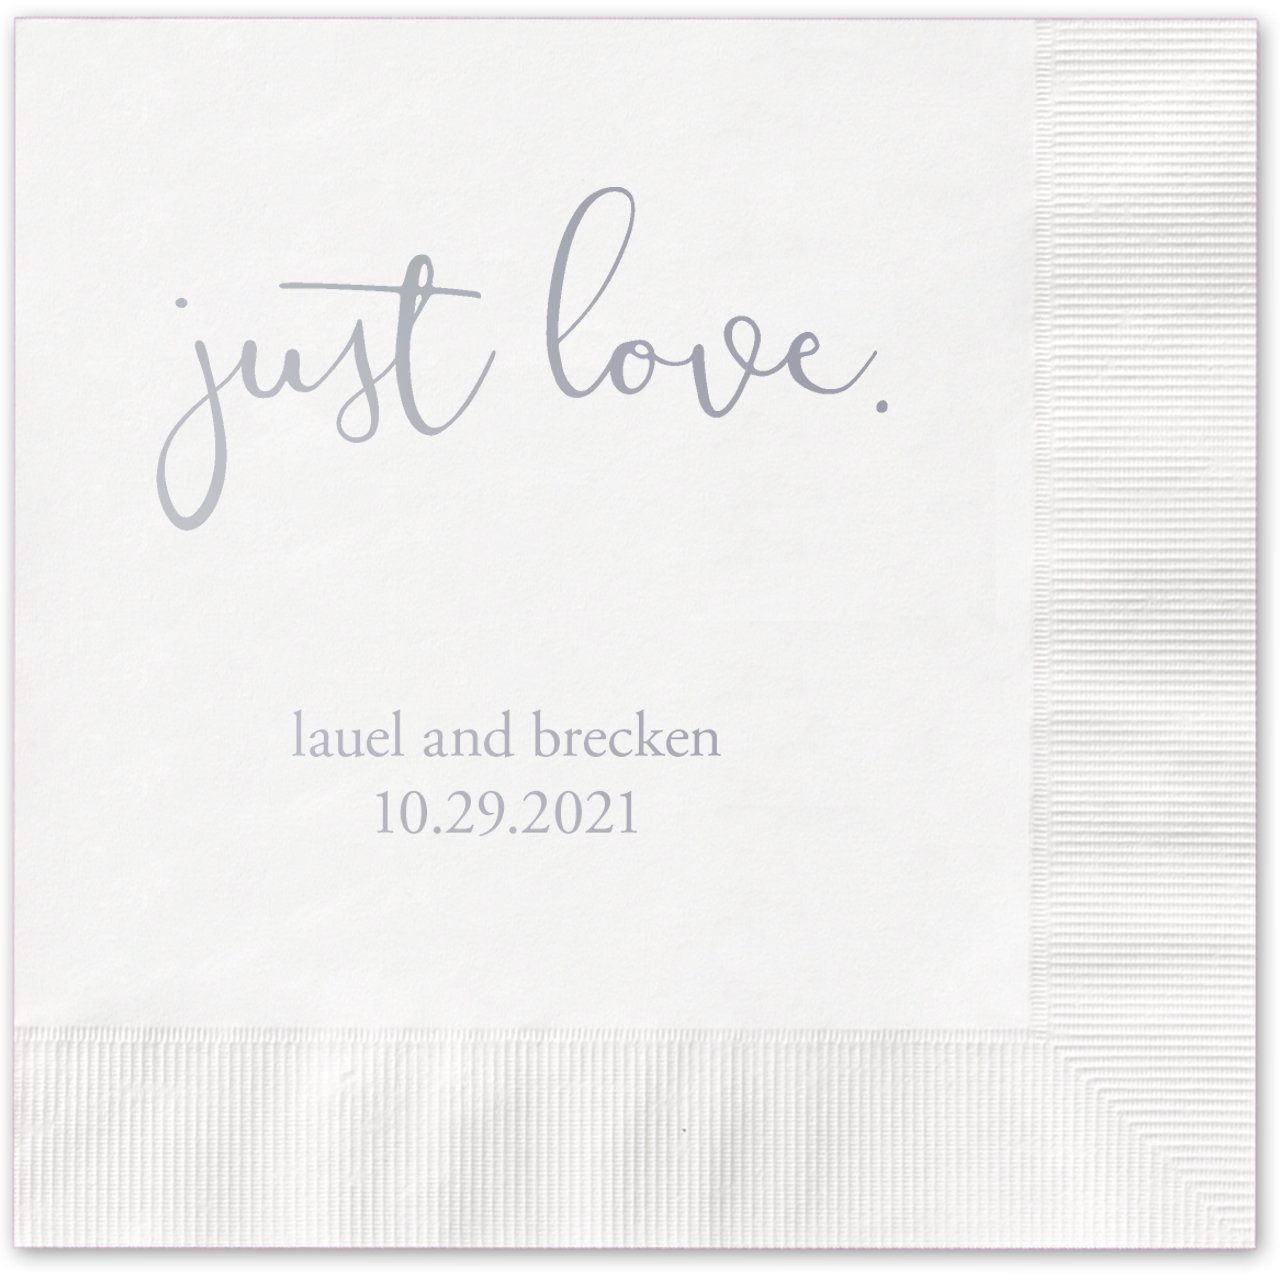 Just Love Personalized Beverage Cocktail Napkins - 100 Custom Printed White Paper Napkins with choice of foil